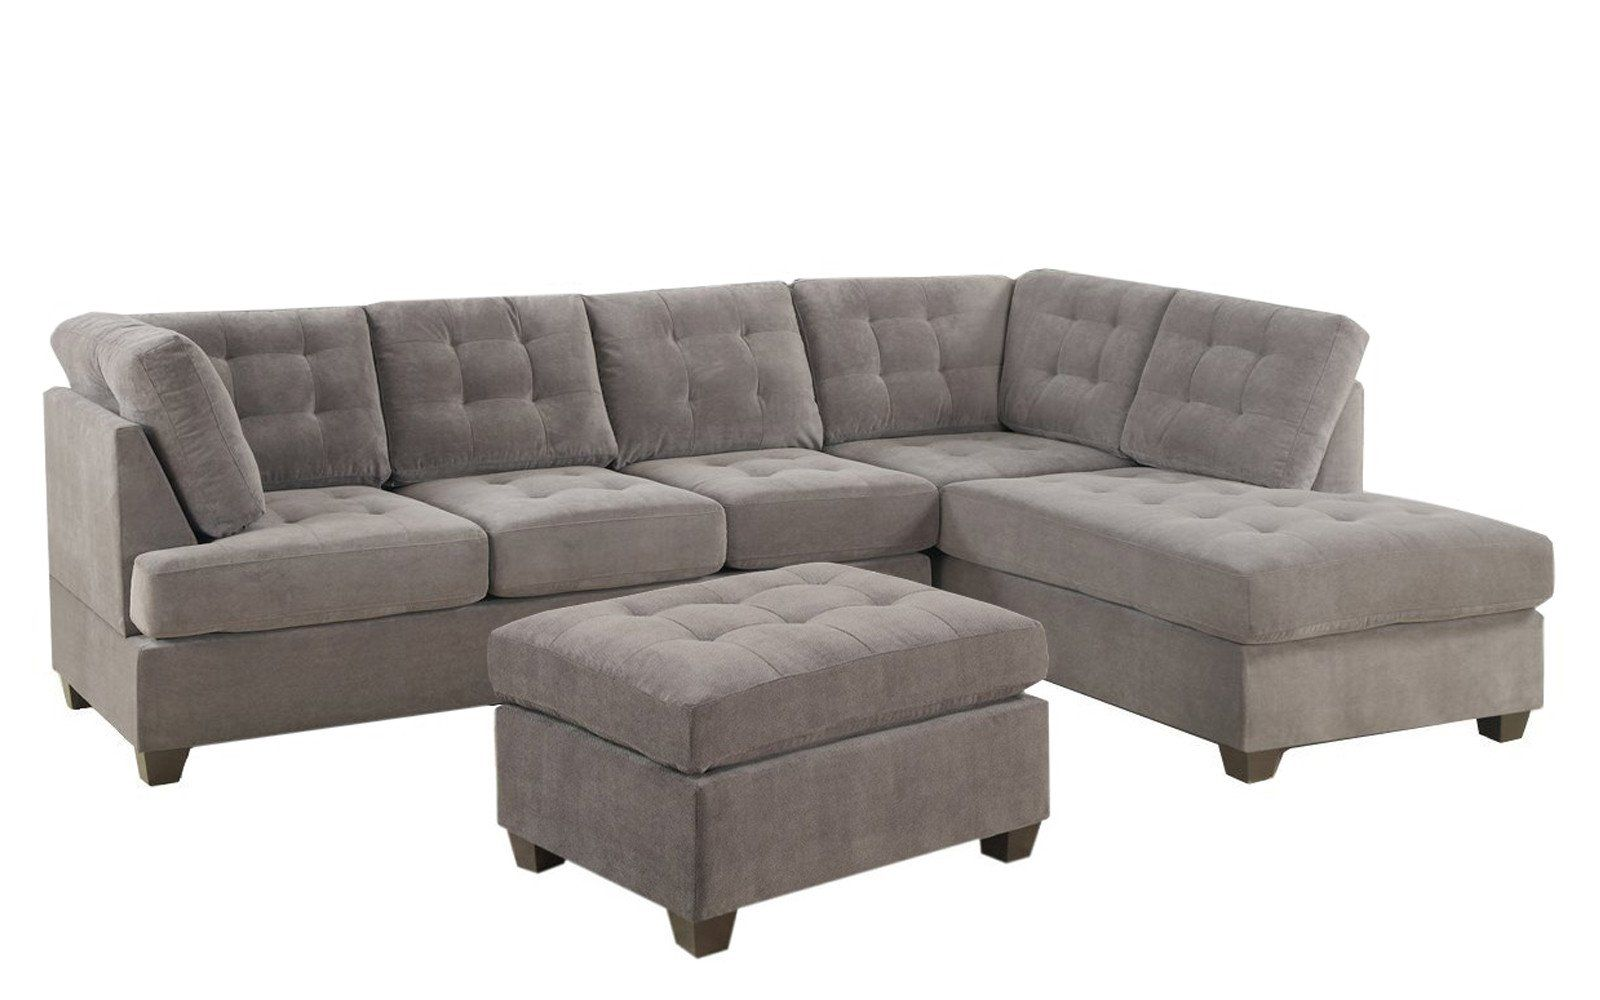 Angolo 1 Classic 3 Piece Sectional And Ottoman Set Sectional Sofa Couch Tufted Sectional Sofa Couch With Chaise